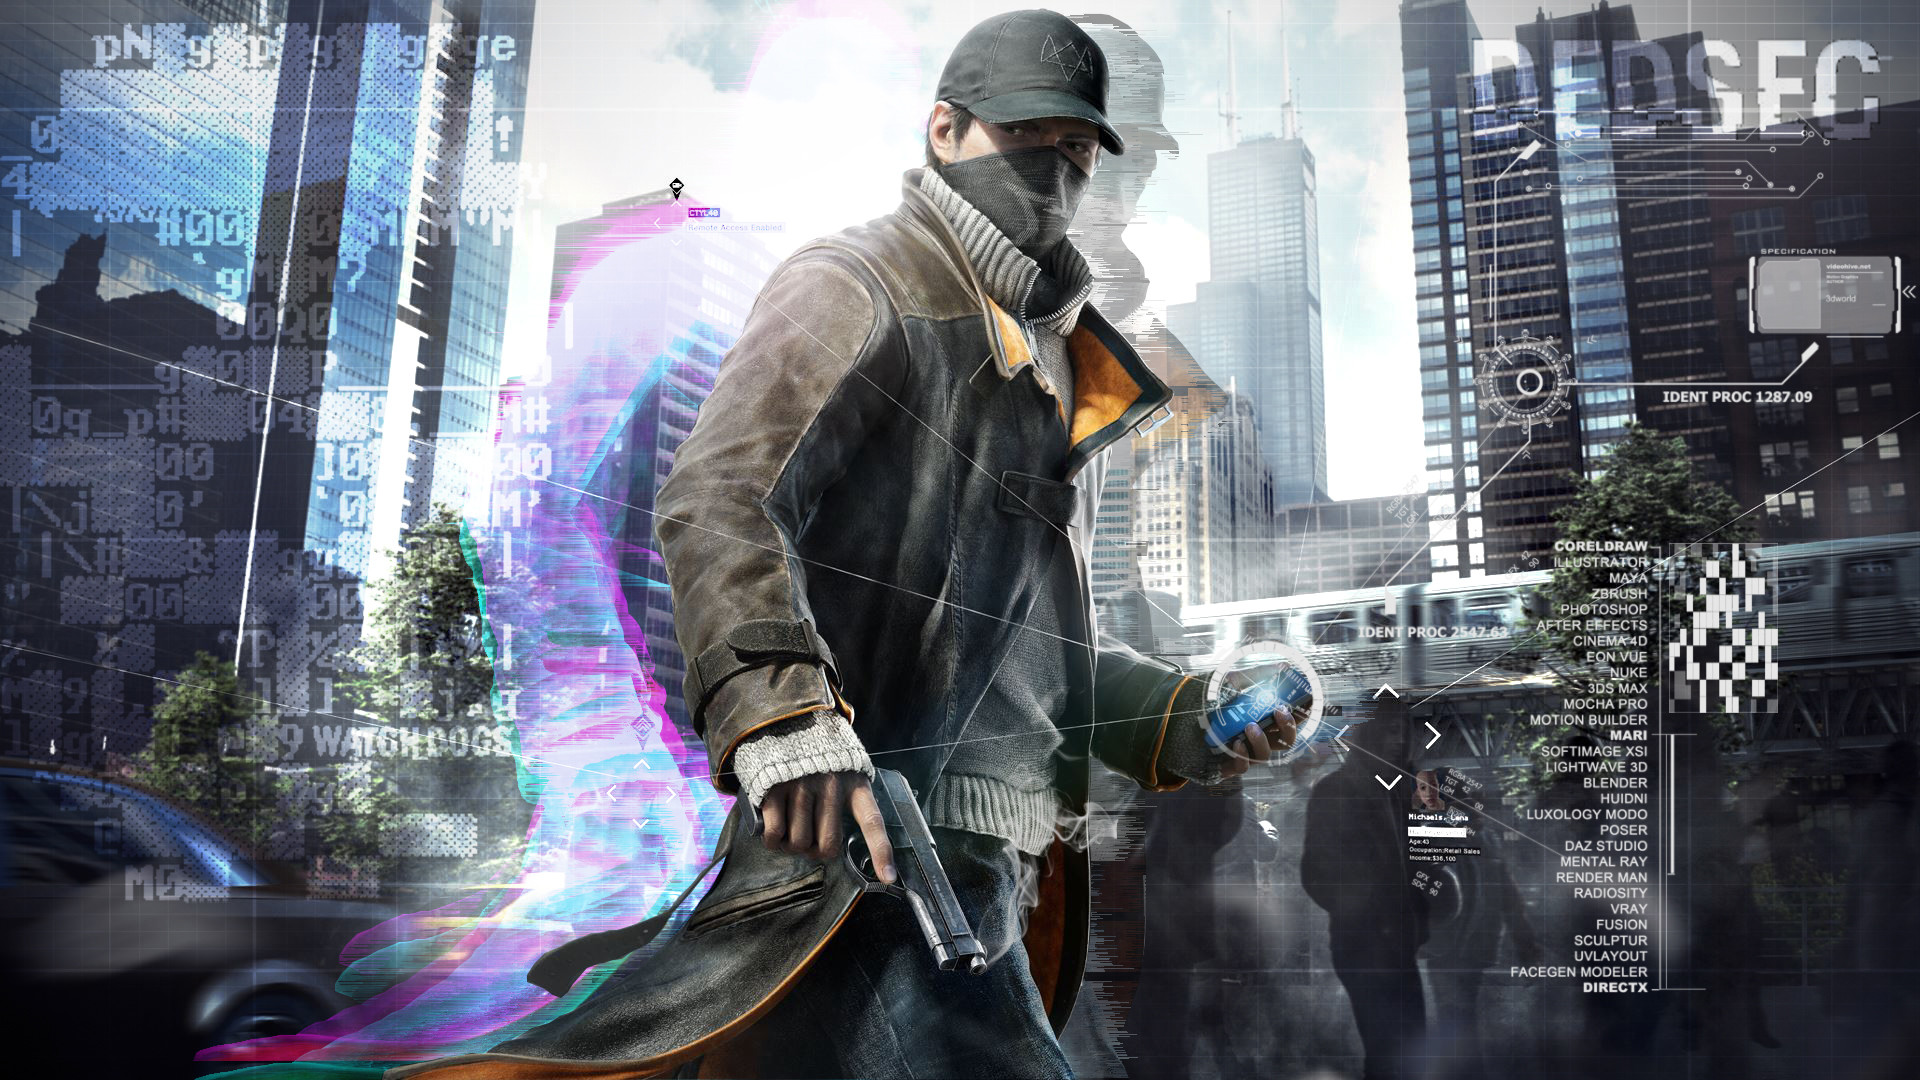 Watch Dogs High Resolution Games Hd Wallpaper For Mobile: Desktop Wallpaper Aiden Pearce, Watch Dogs, Game, Hd Image